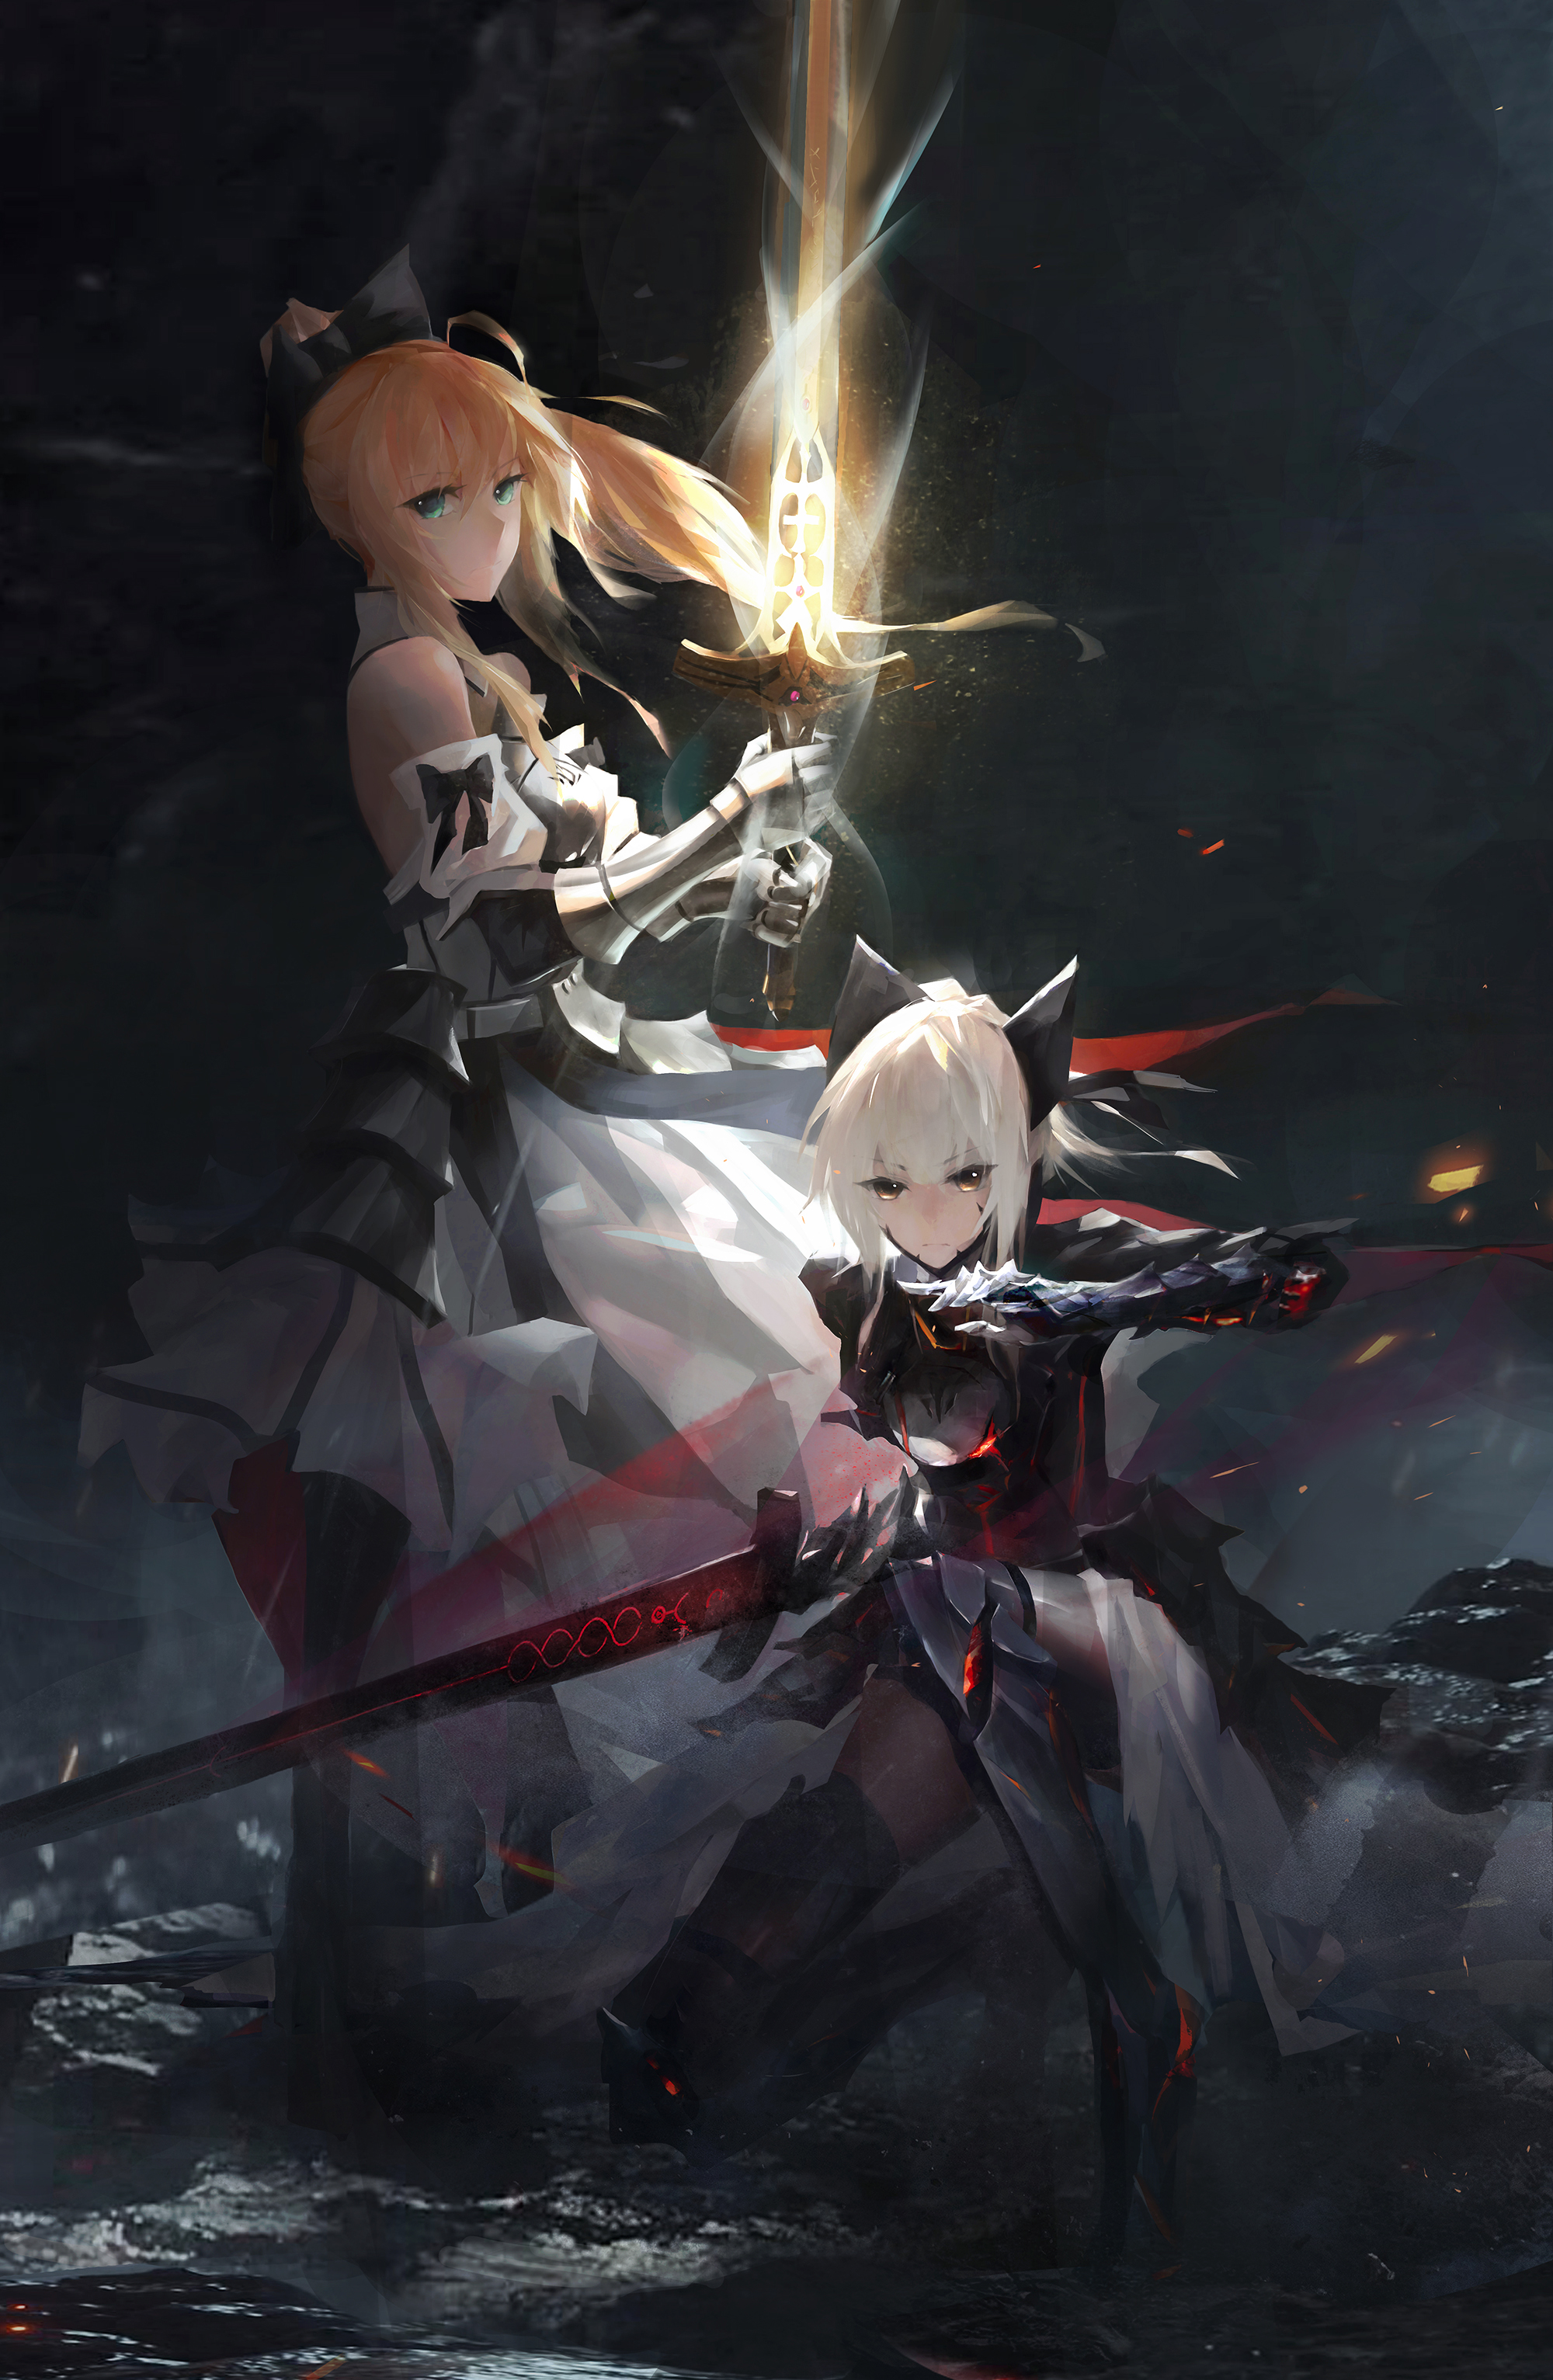 Pin by Wong Jia An on Fate Anime, Anime artwork, Art